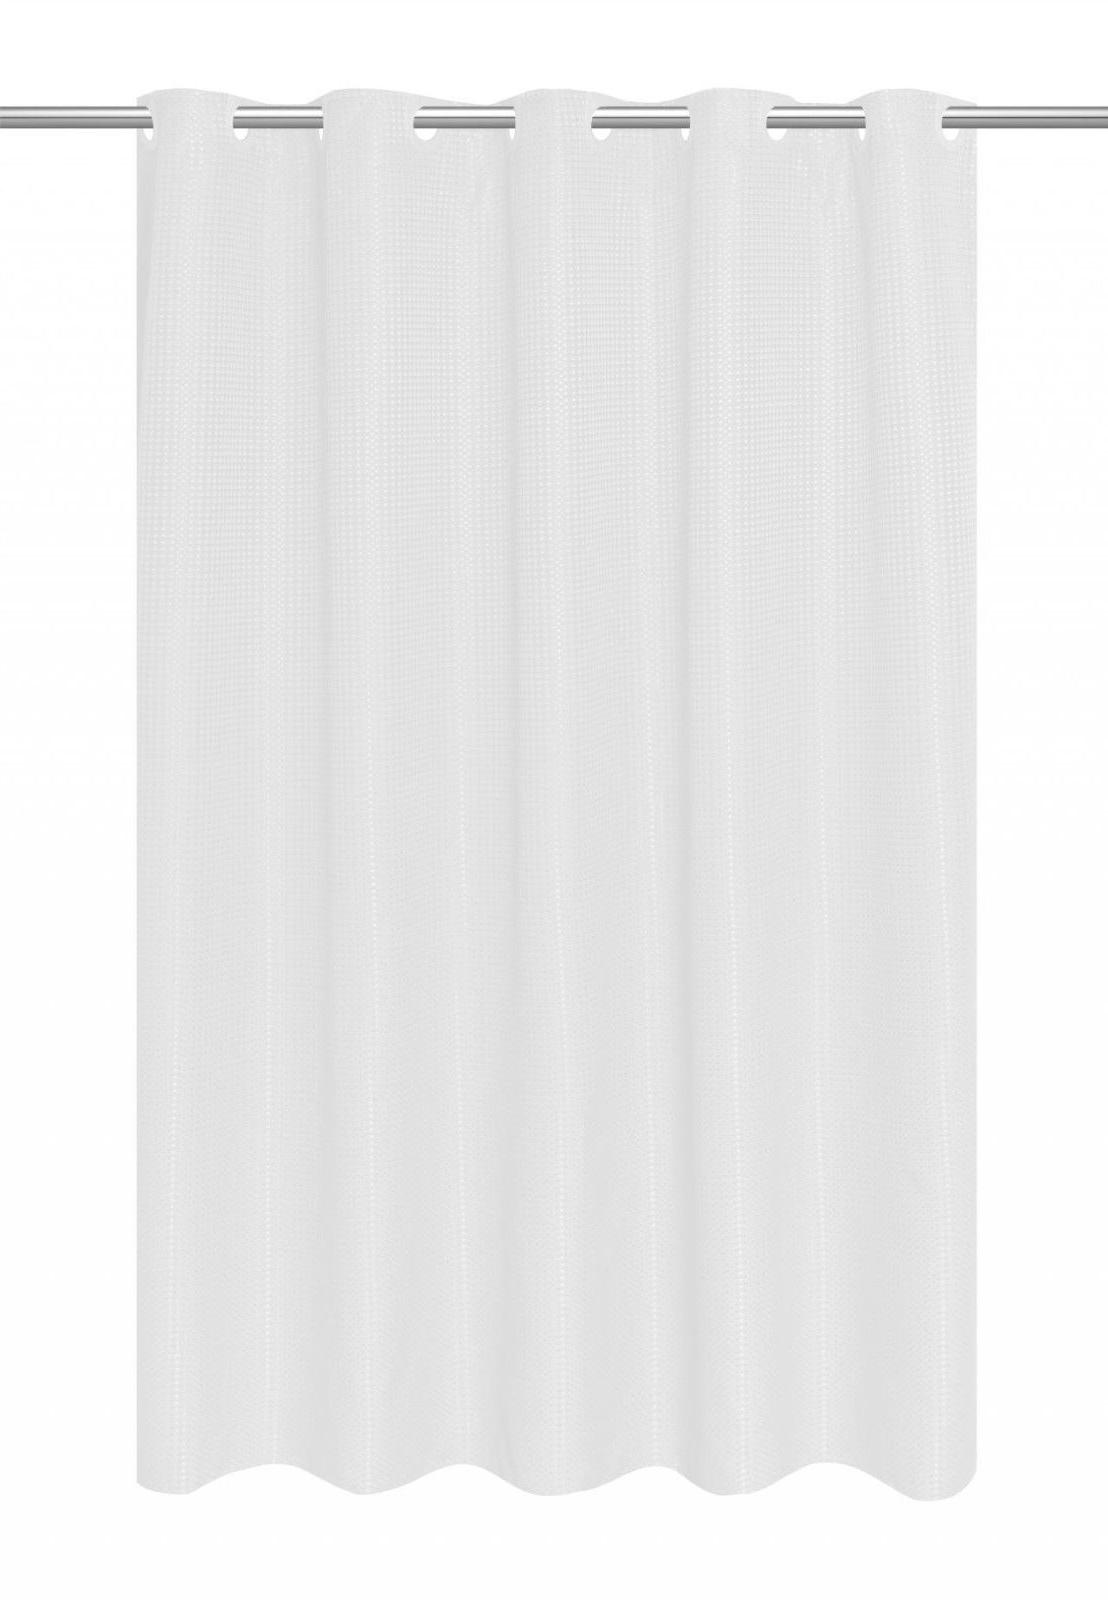 EZ-ON Hookless Dobby Fabric Curtain Liner - Assorted